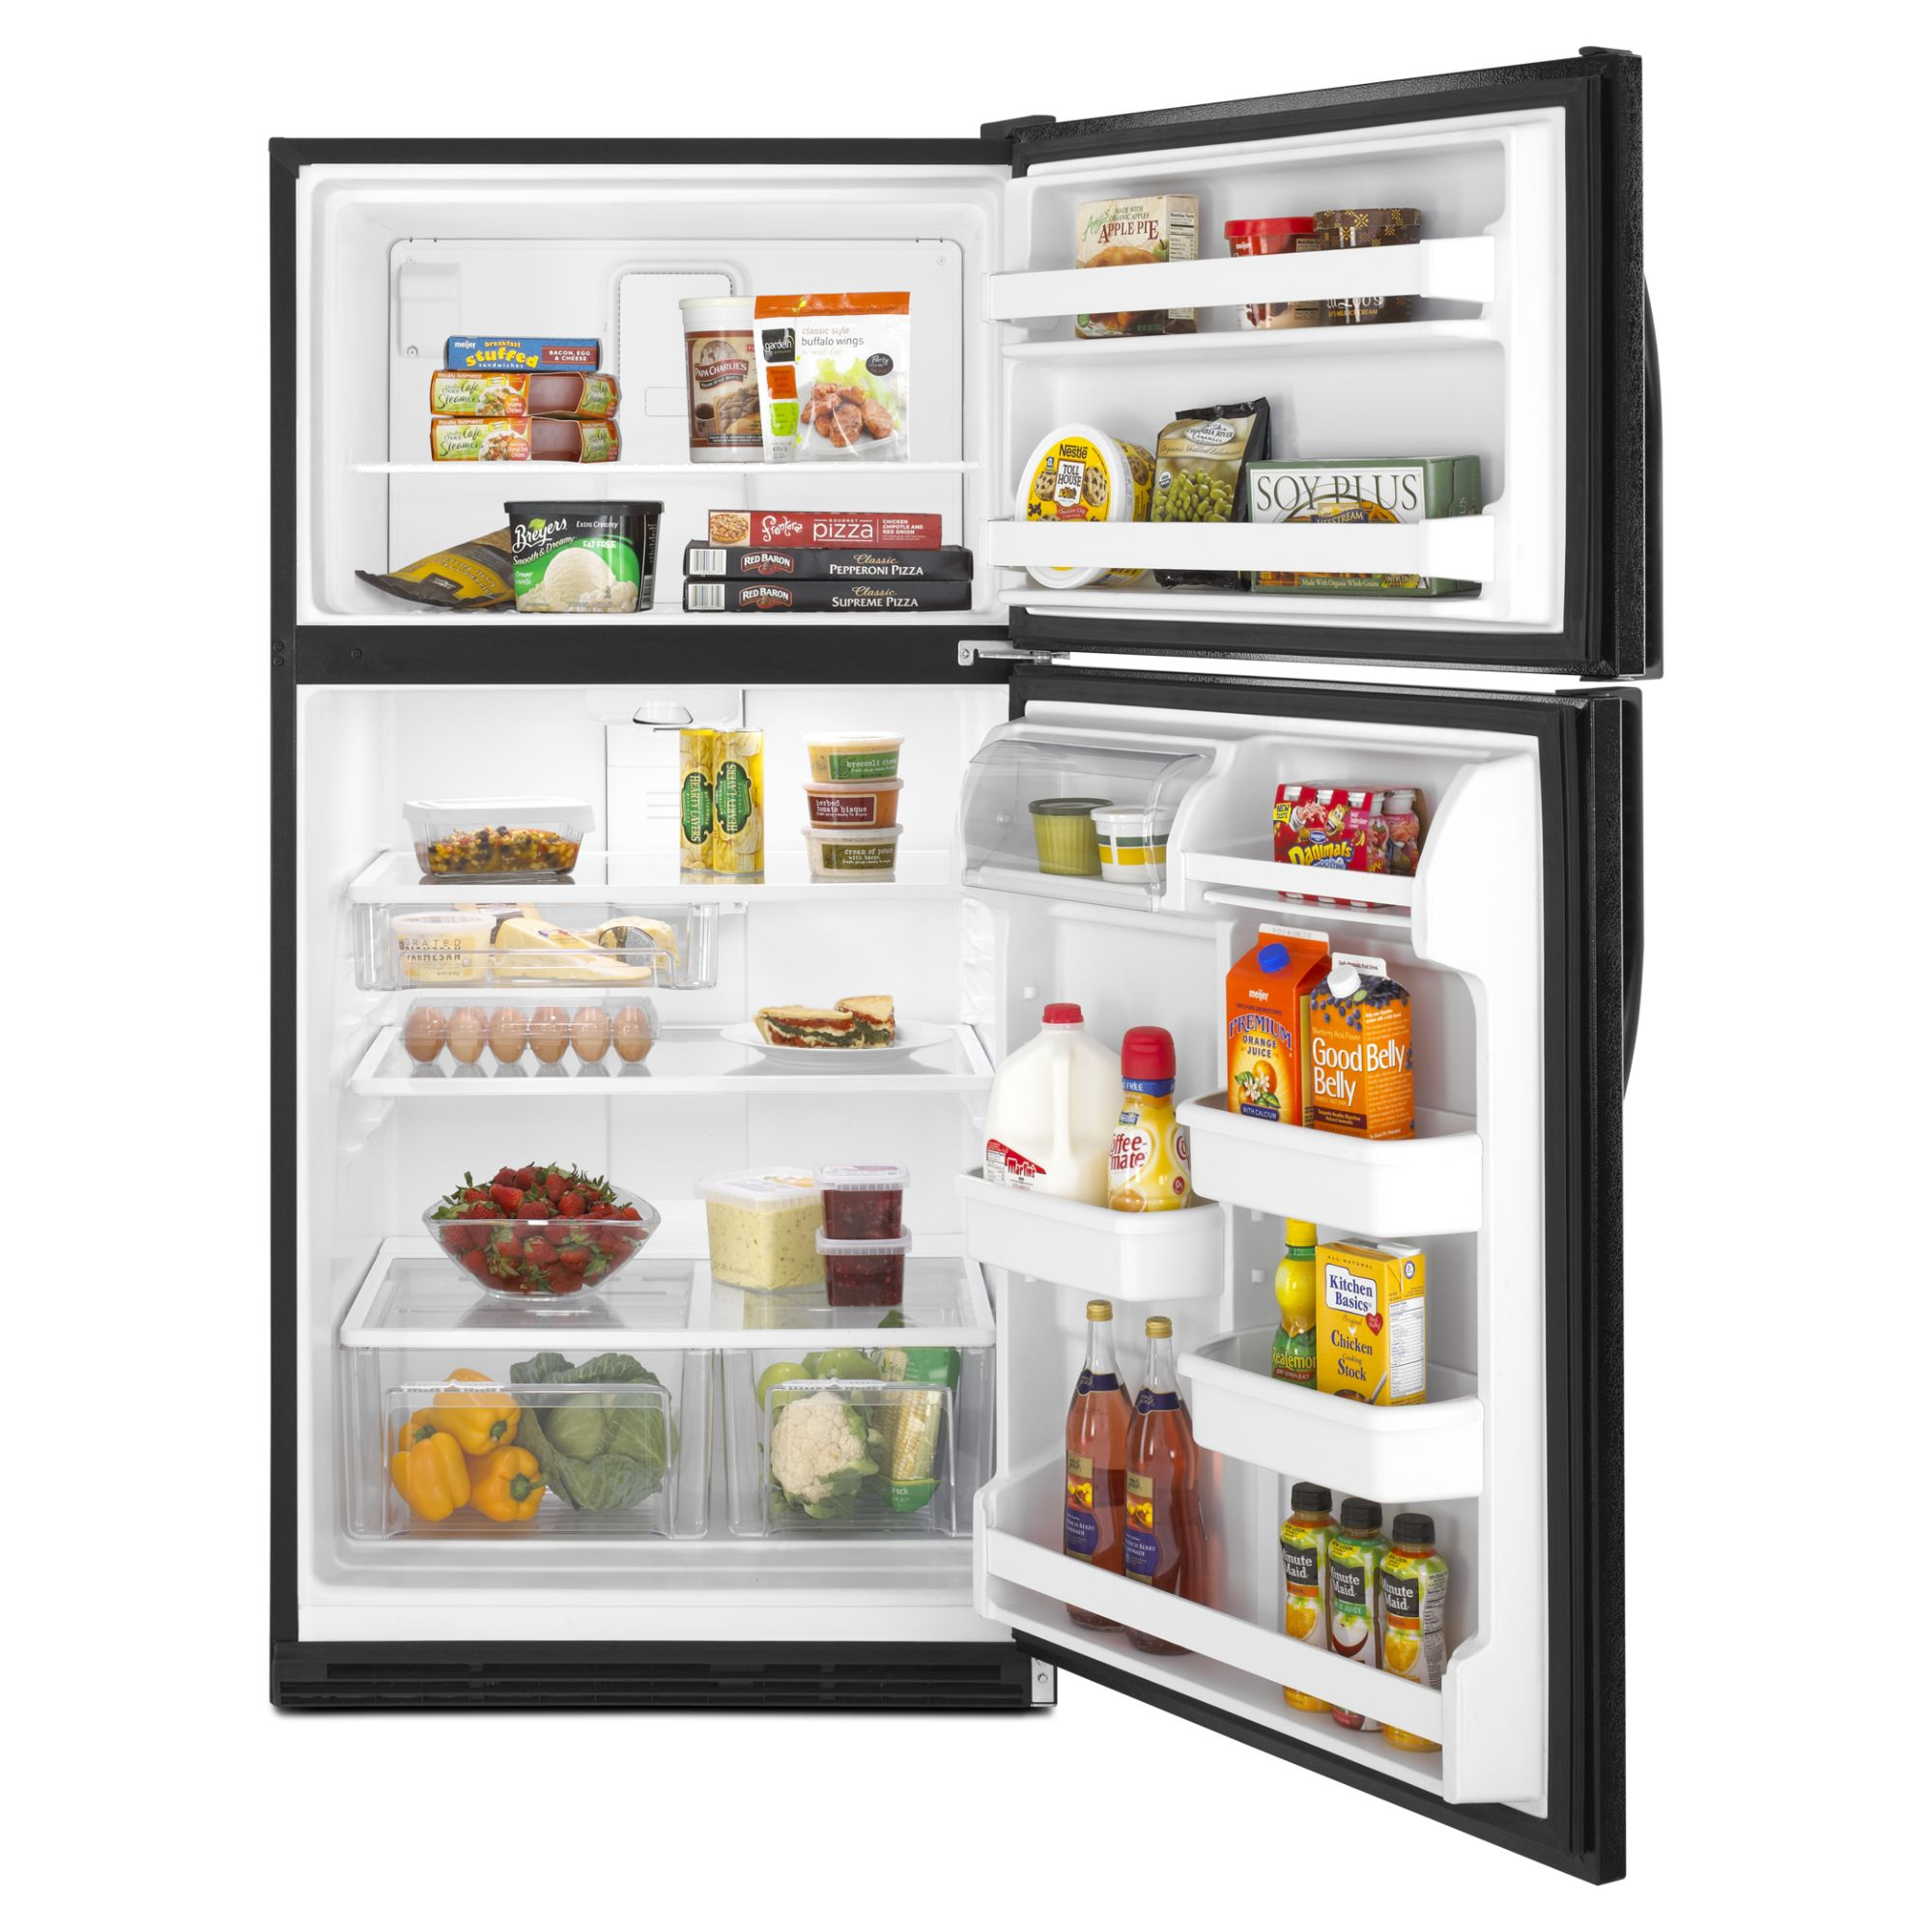 Kenmore 21.0 cu. ft. Top-Freezer Refrigerator, Black